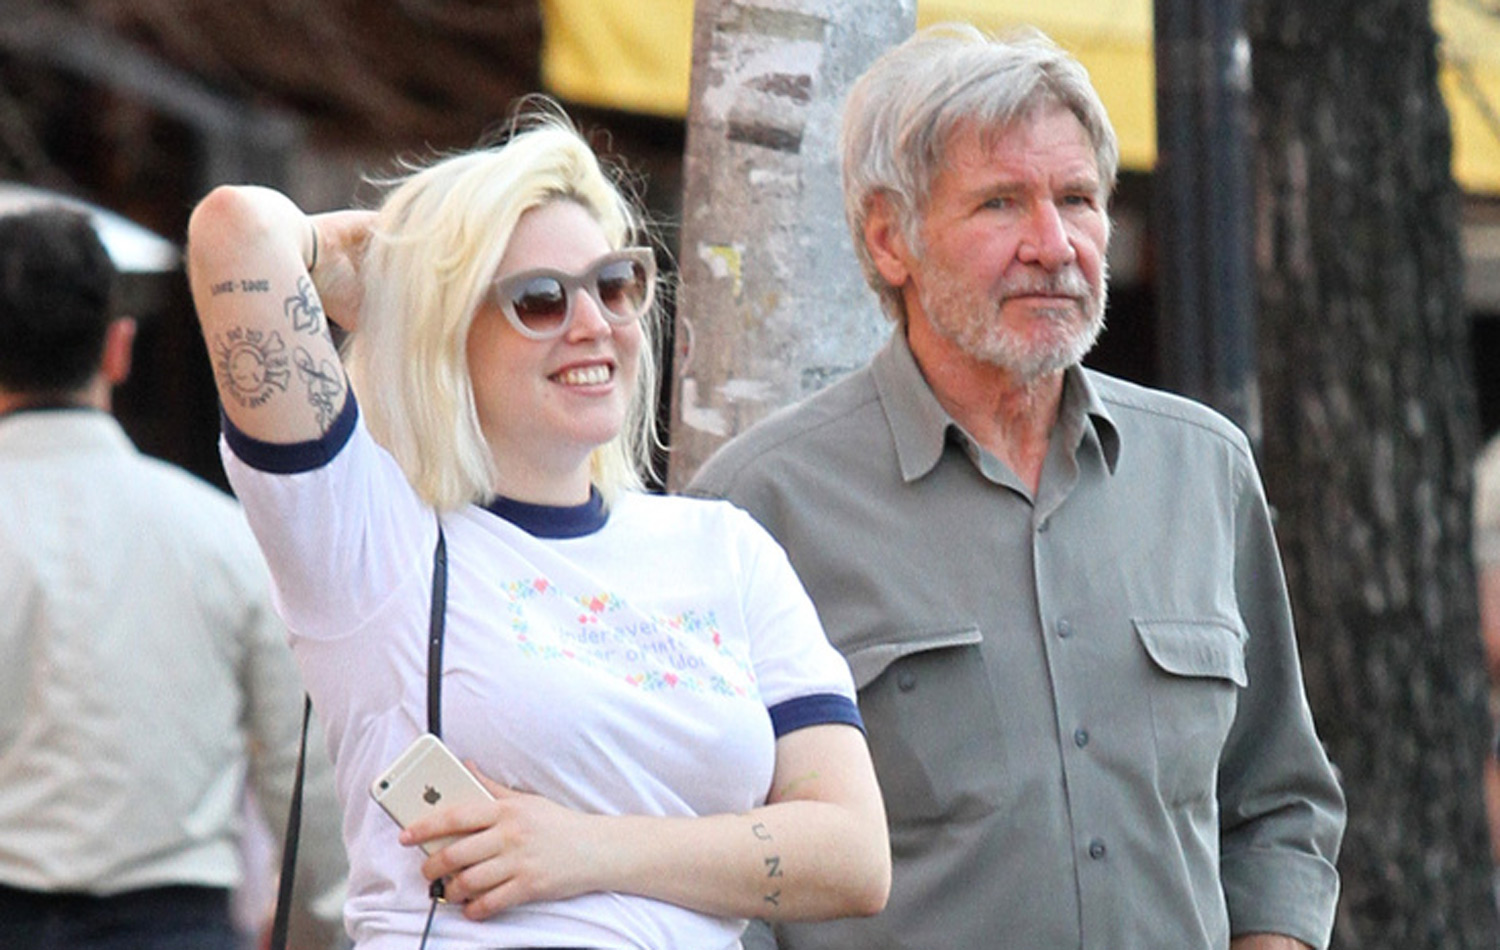 harrison ford opens up about his daughter's struggle with epilepsy